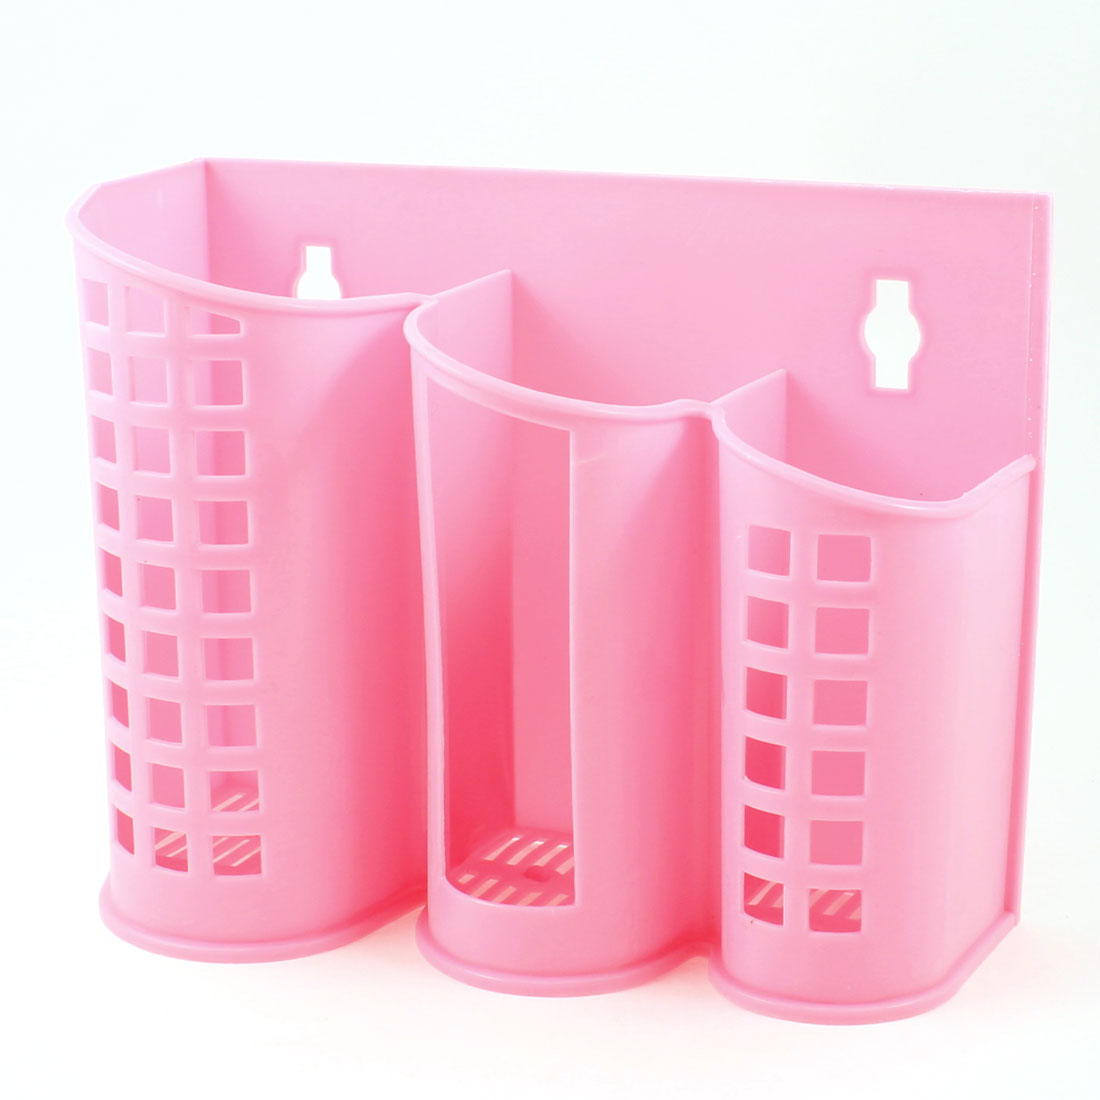 Plaid Perforating 3 Compartments Chopsticks Spoon Cage Holder Case Pink